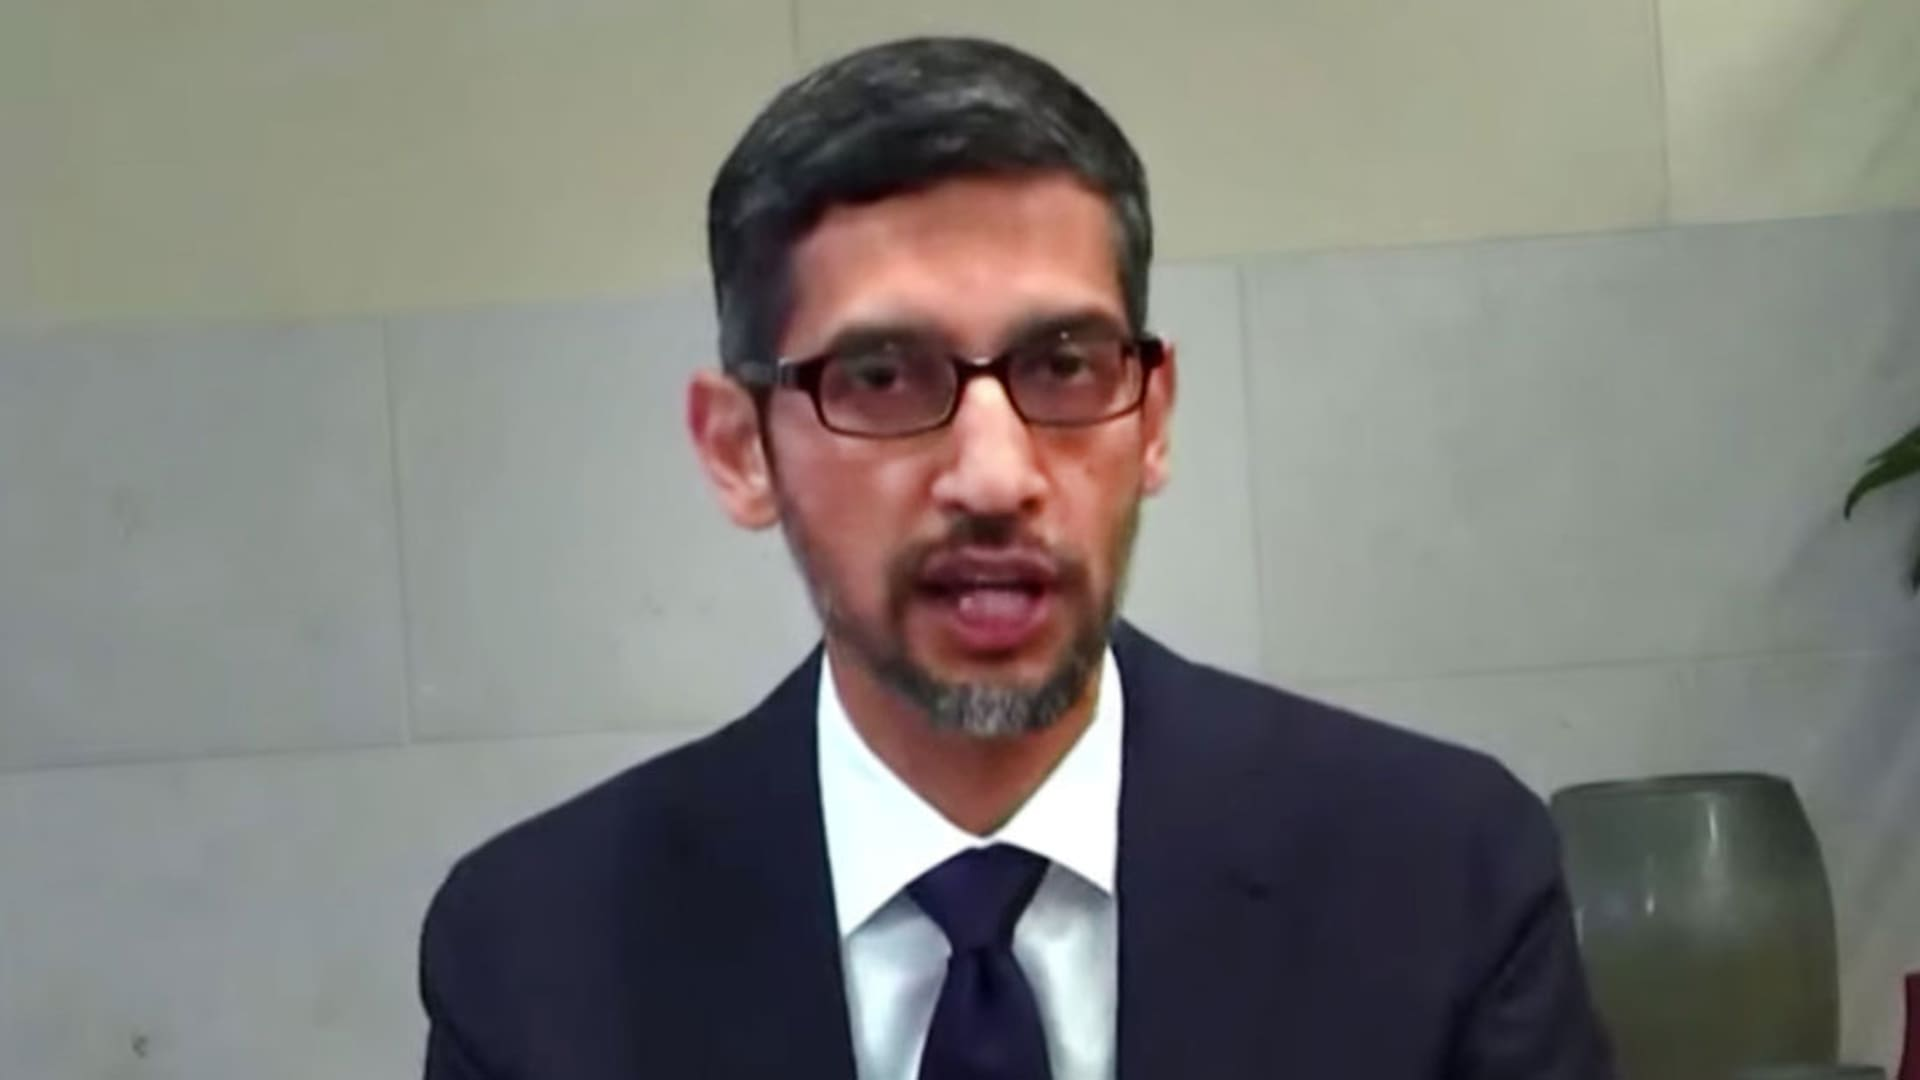 Sundar Pichai, Google testifies at congressional hearing, March 25, 2021.